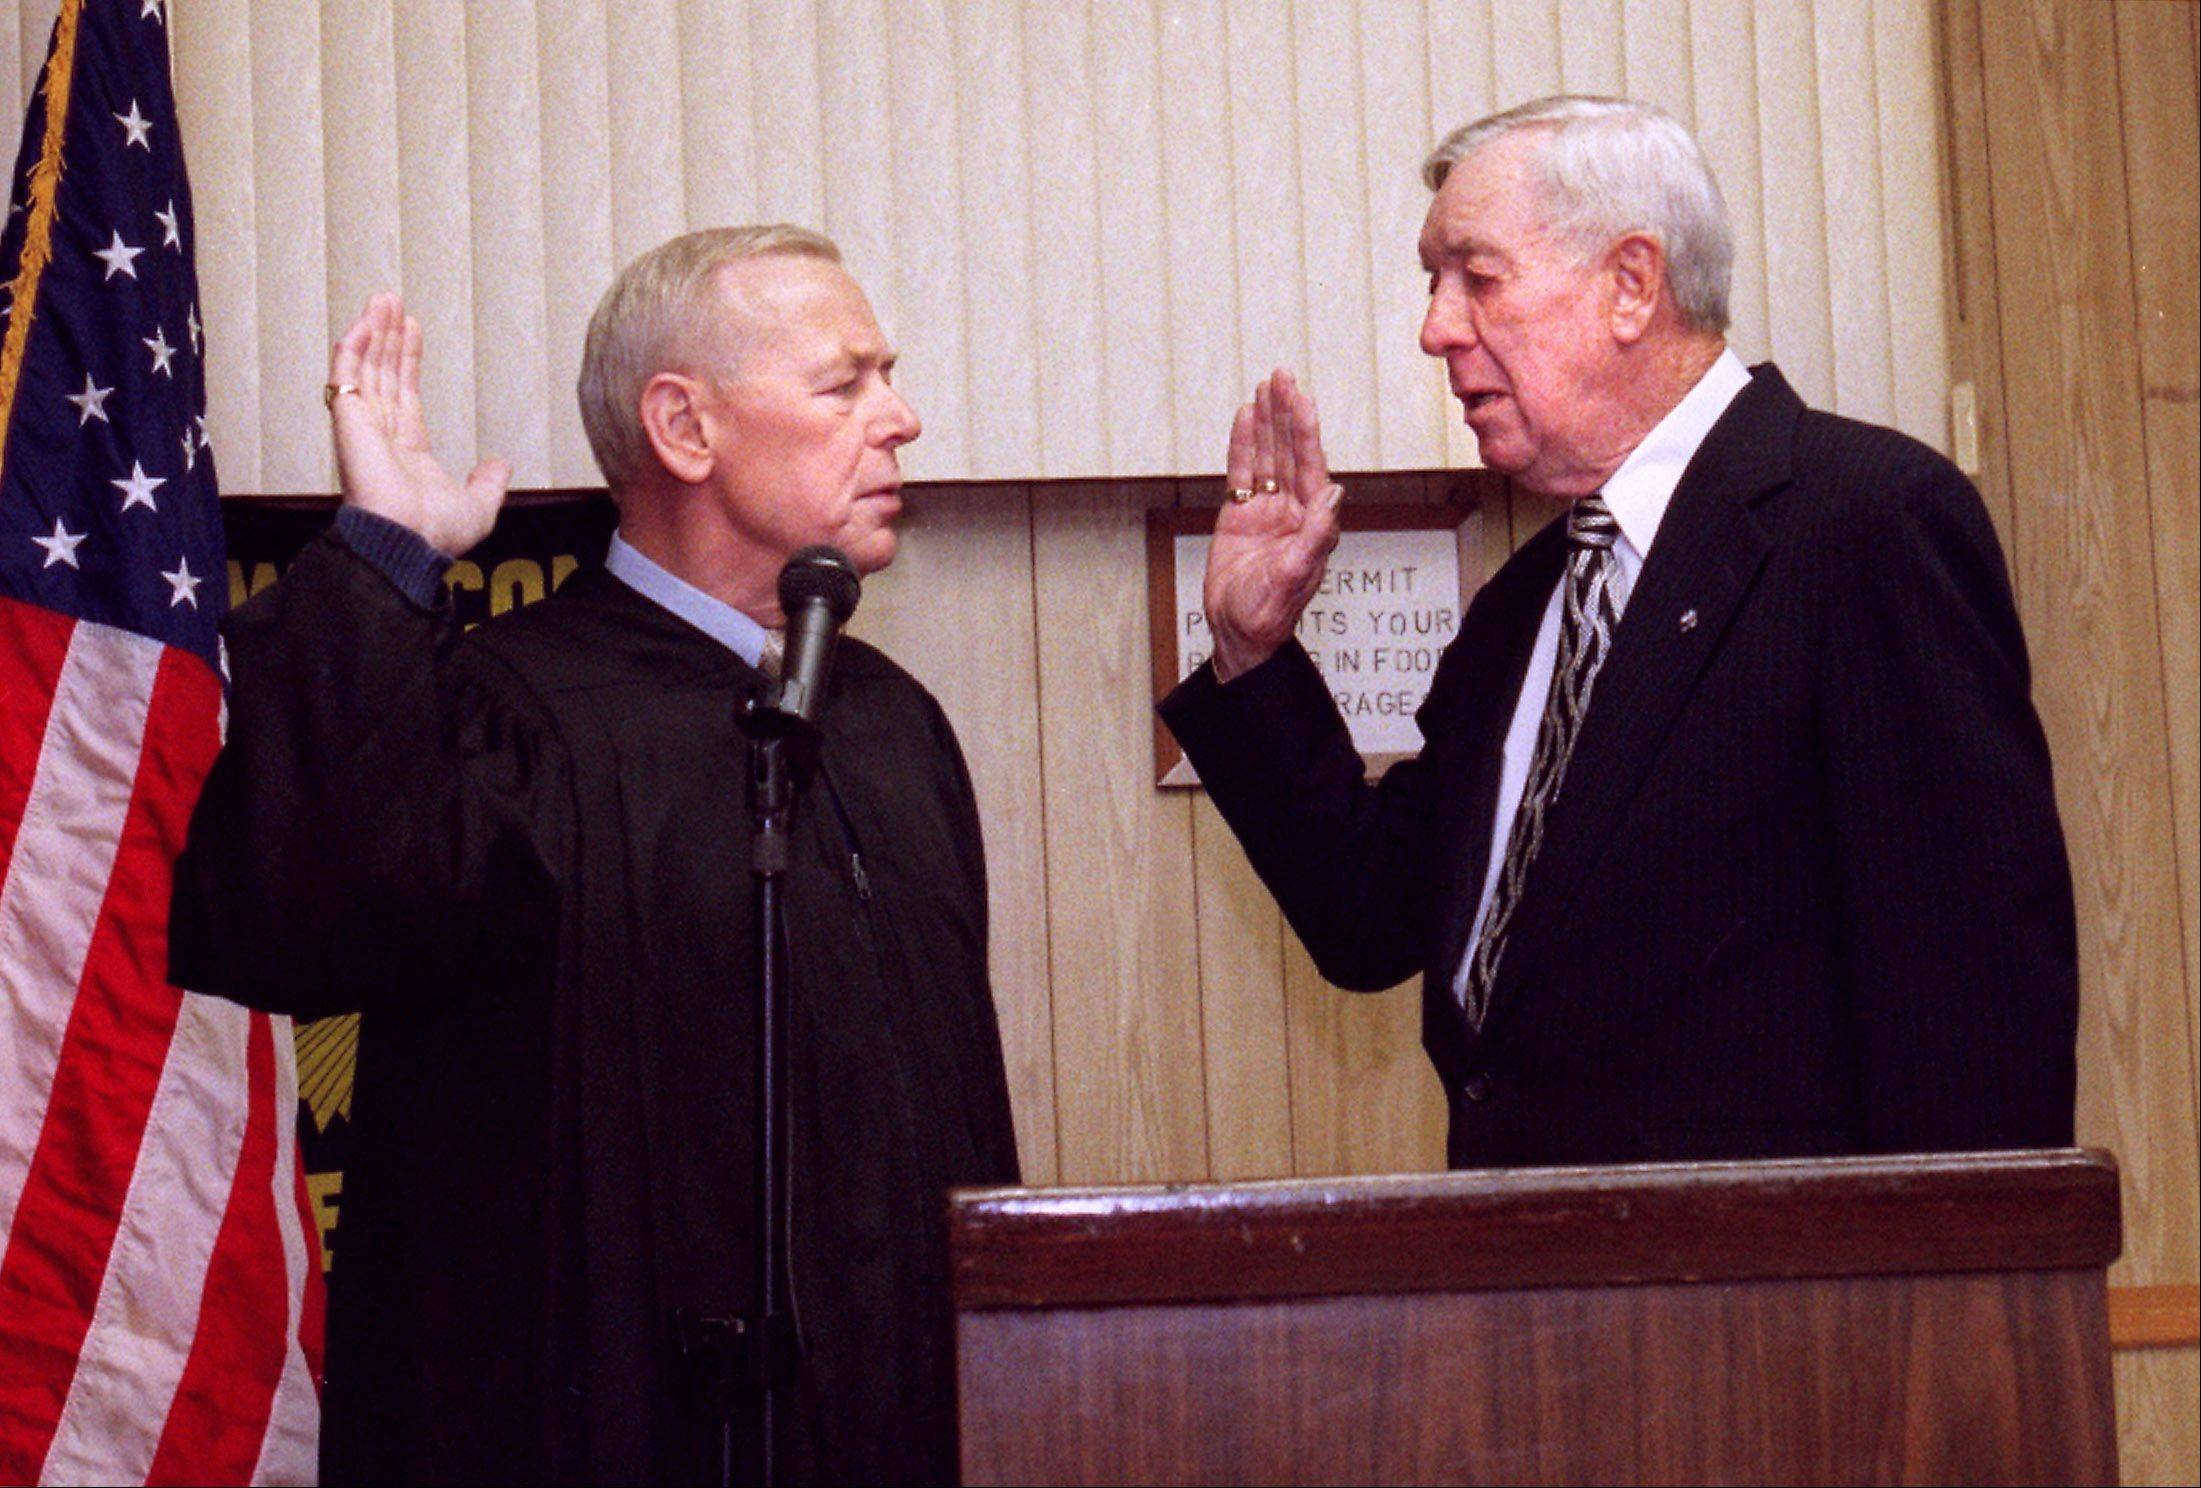 Judge John Darrah, left, swears in Ray Soden into the Illinois Senate at the VFW hall in Wood Dale in 2003.